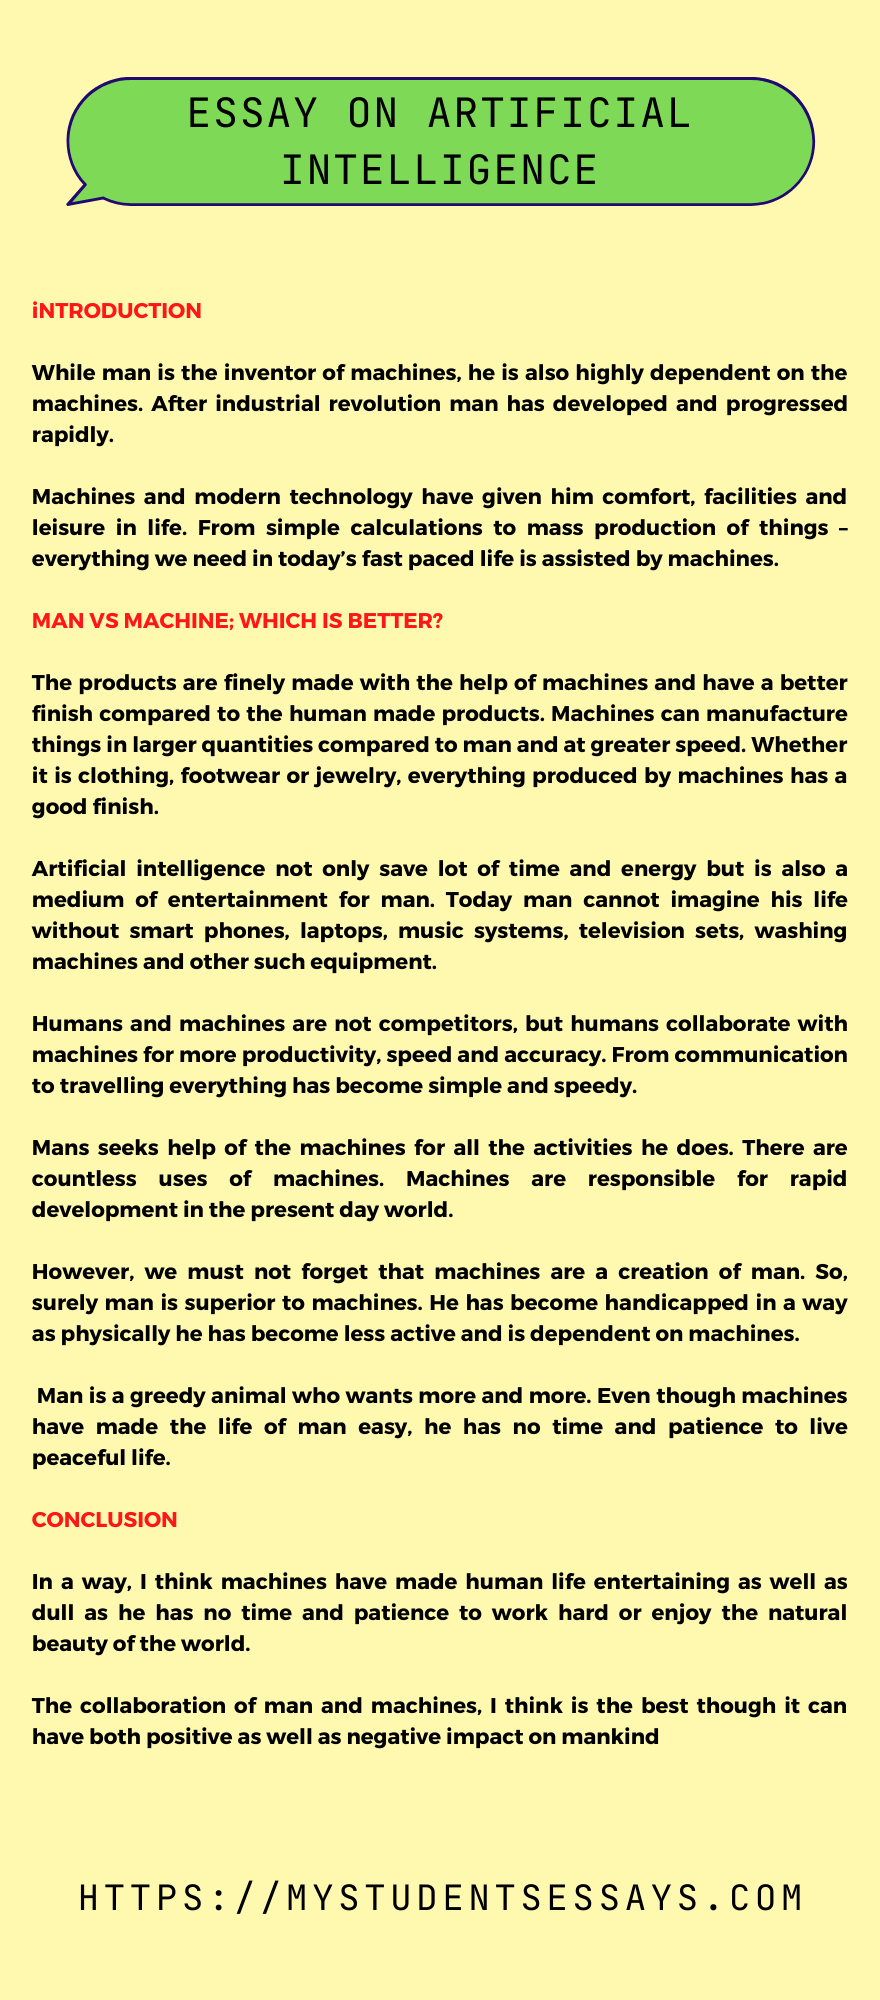 Essay on Artificial Intelligence For Students